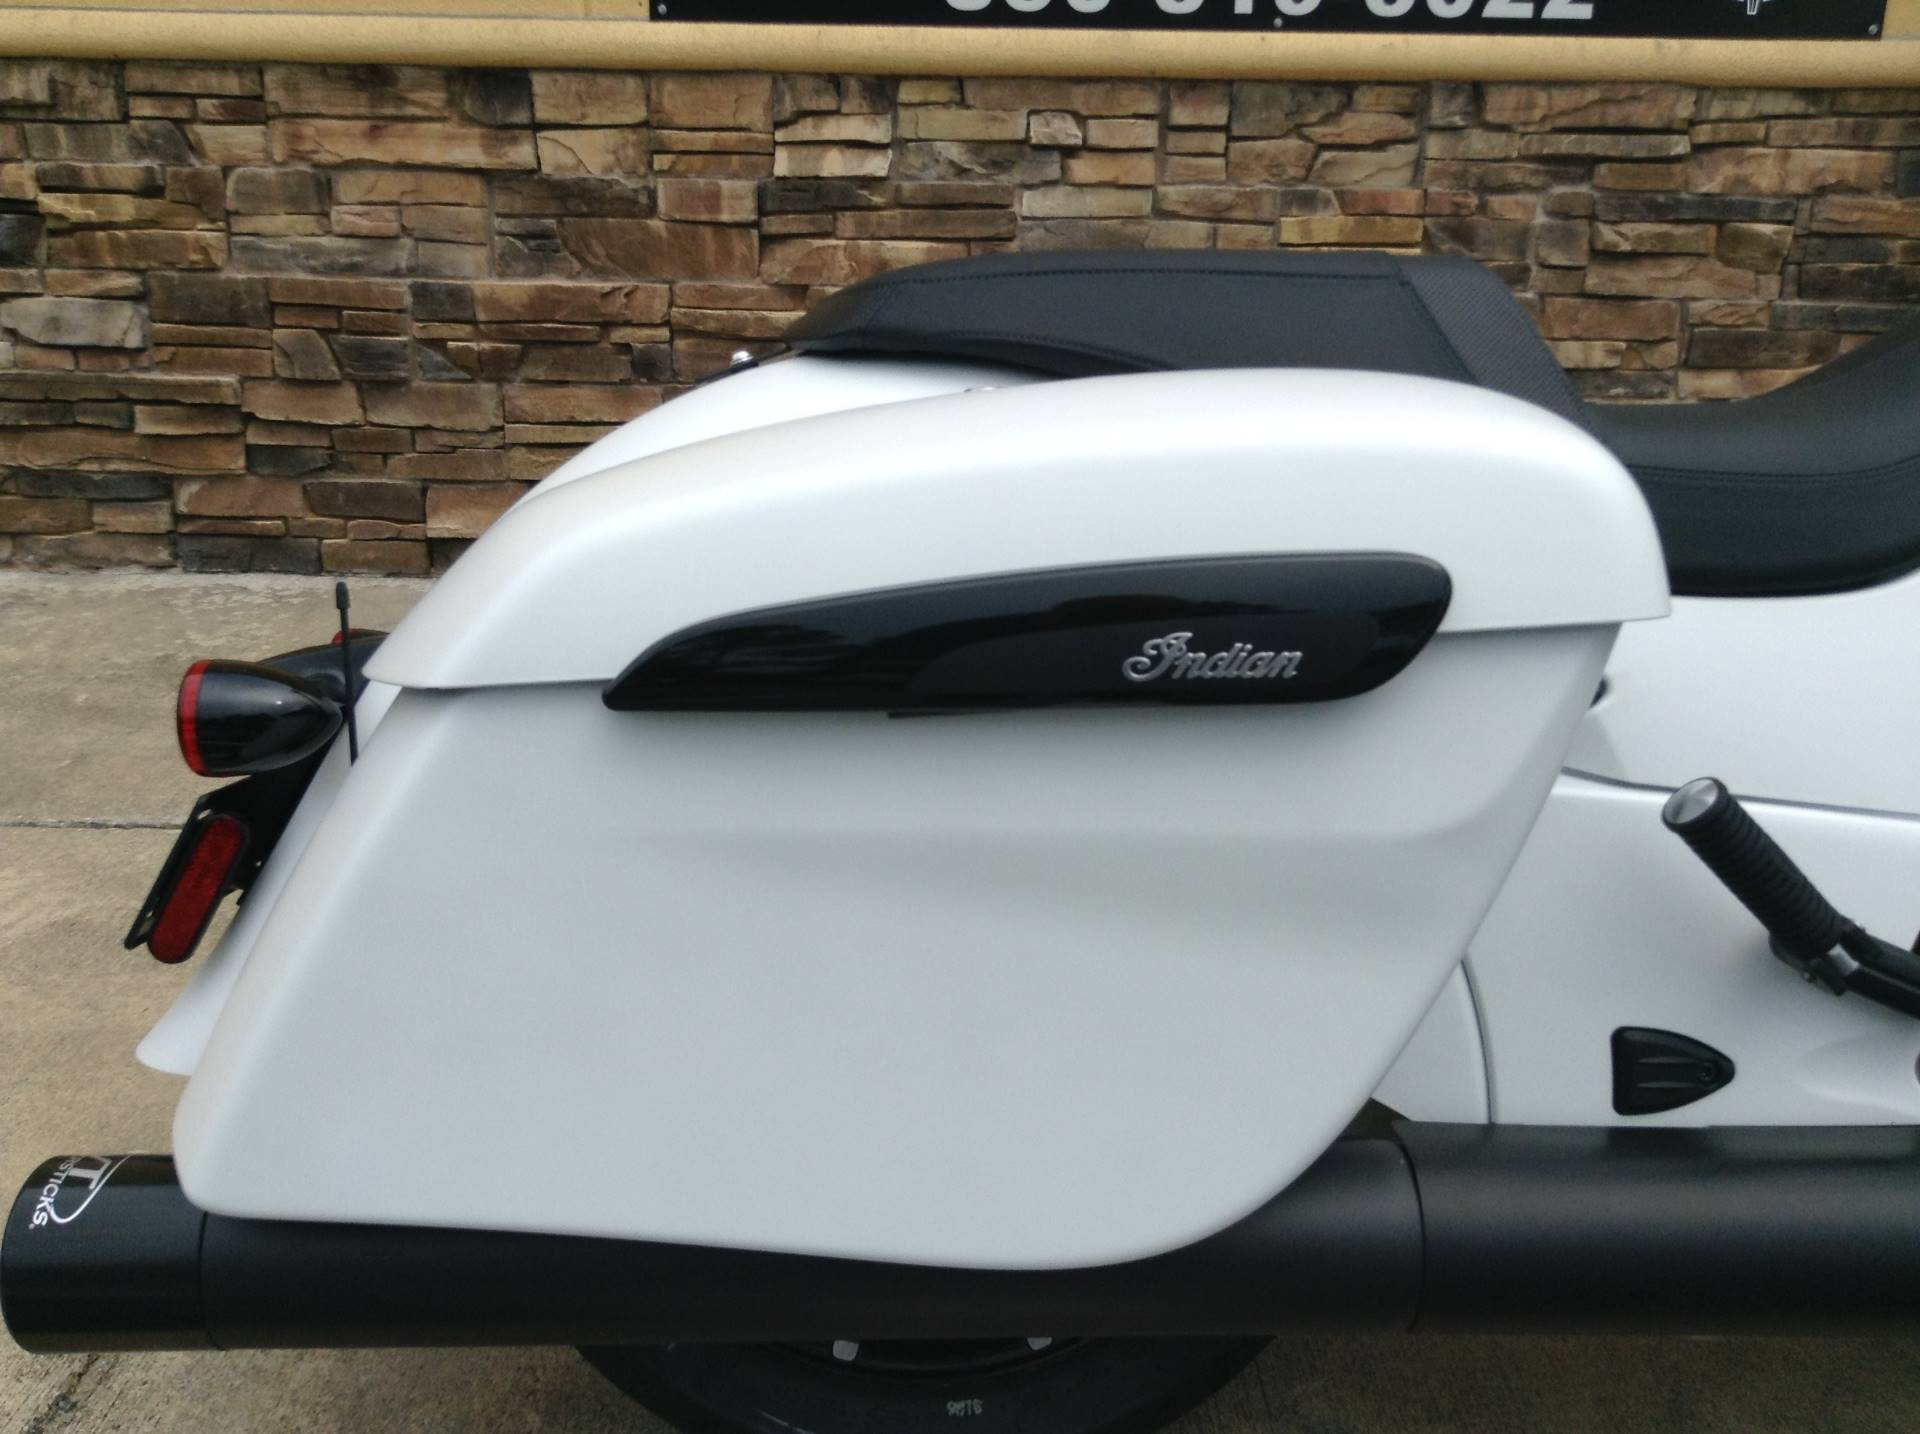 2019 Indian CHIEFTAIN in Panama City Beach, Florida - Photo 9